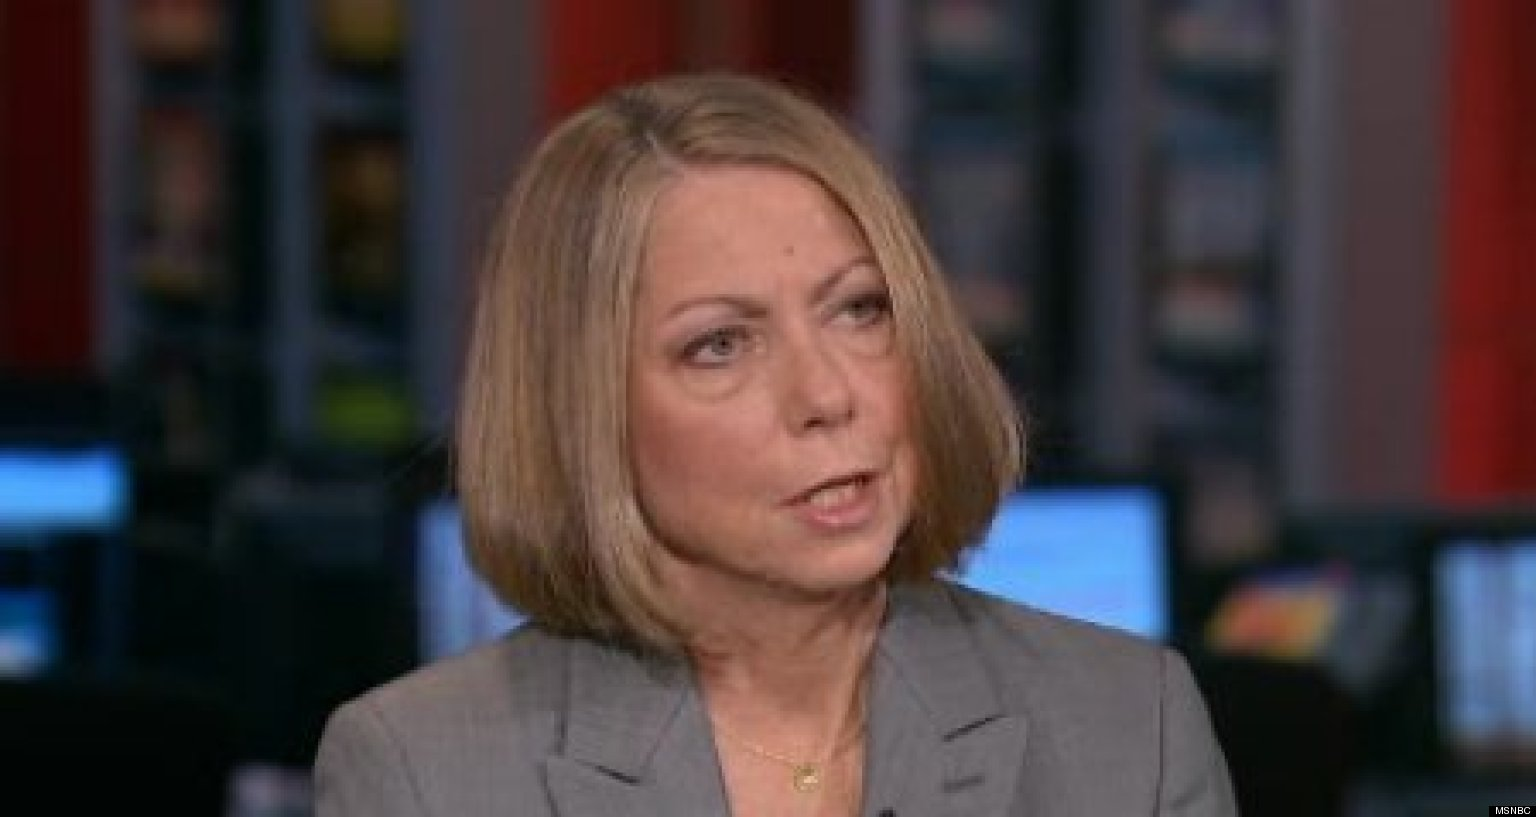 Jill Abramson On DOJ Investigations: 'News Gathering Is Being Criminalized'